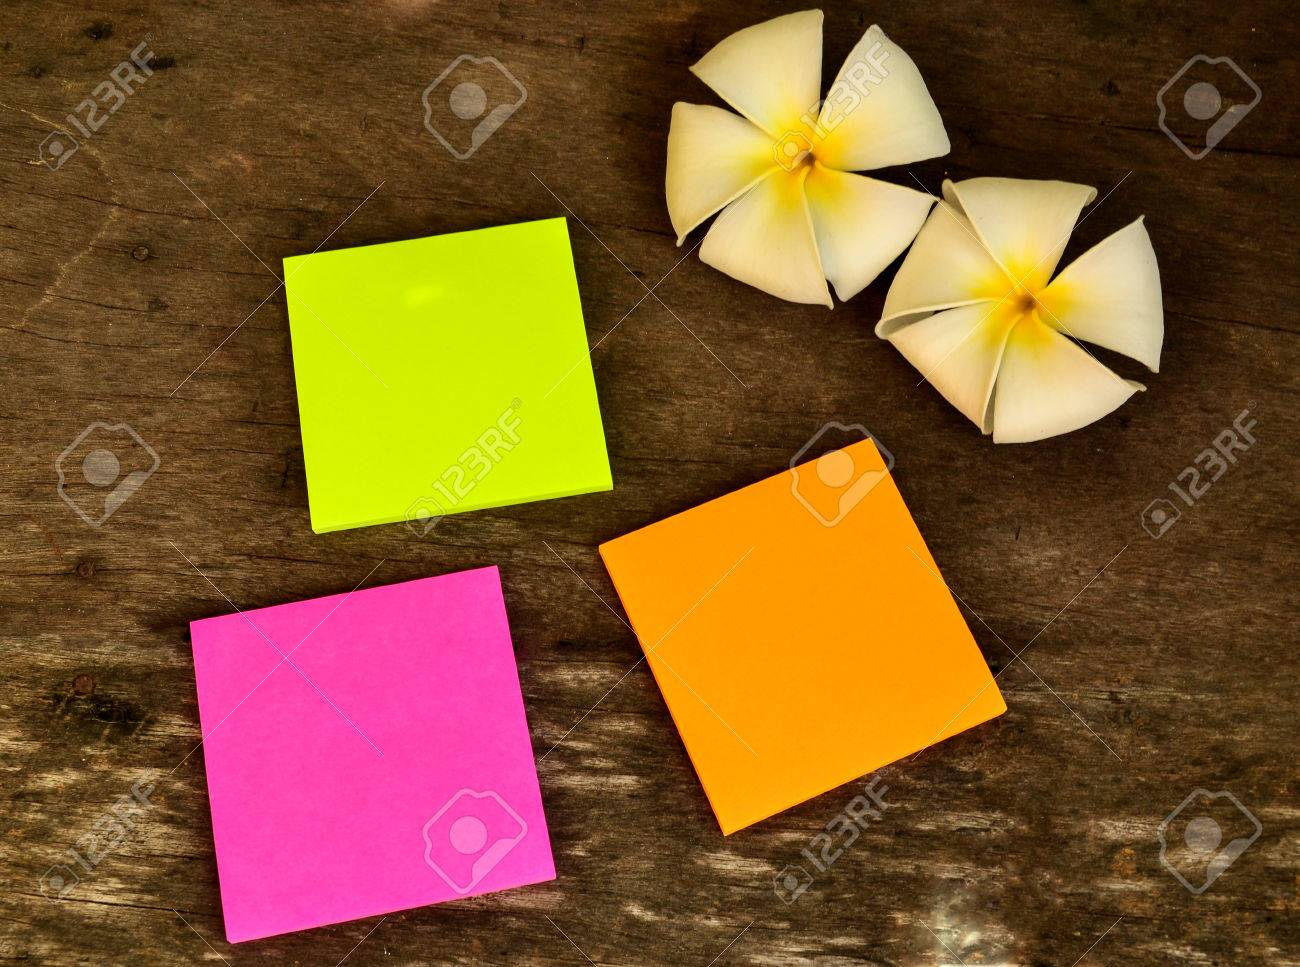 Colorful Post It Note With Plumeria Flower On Wooden Board Stock